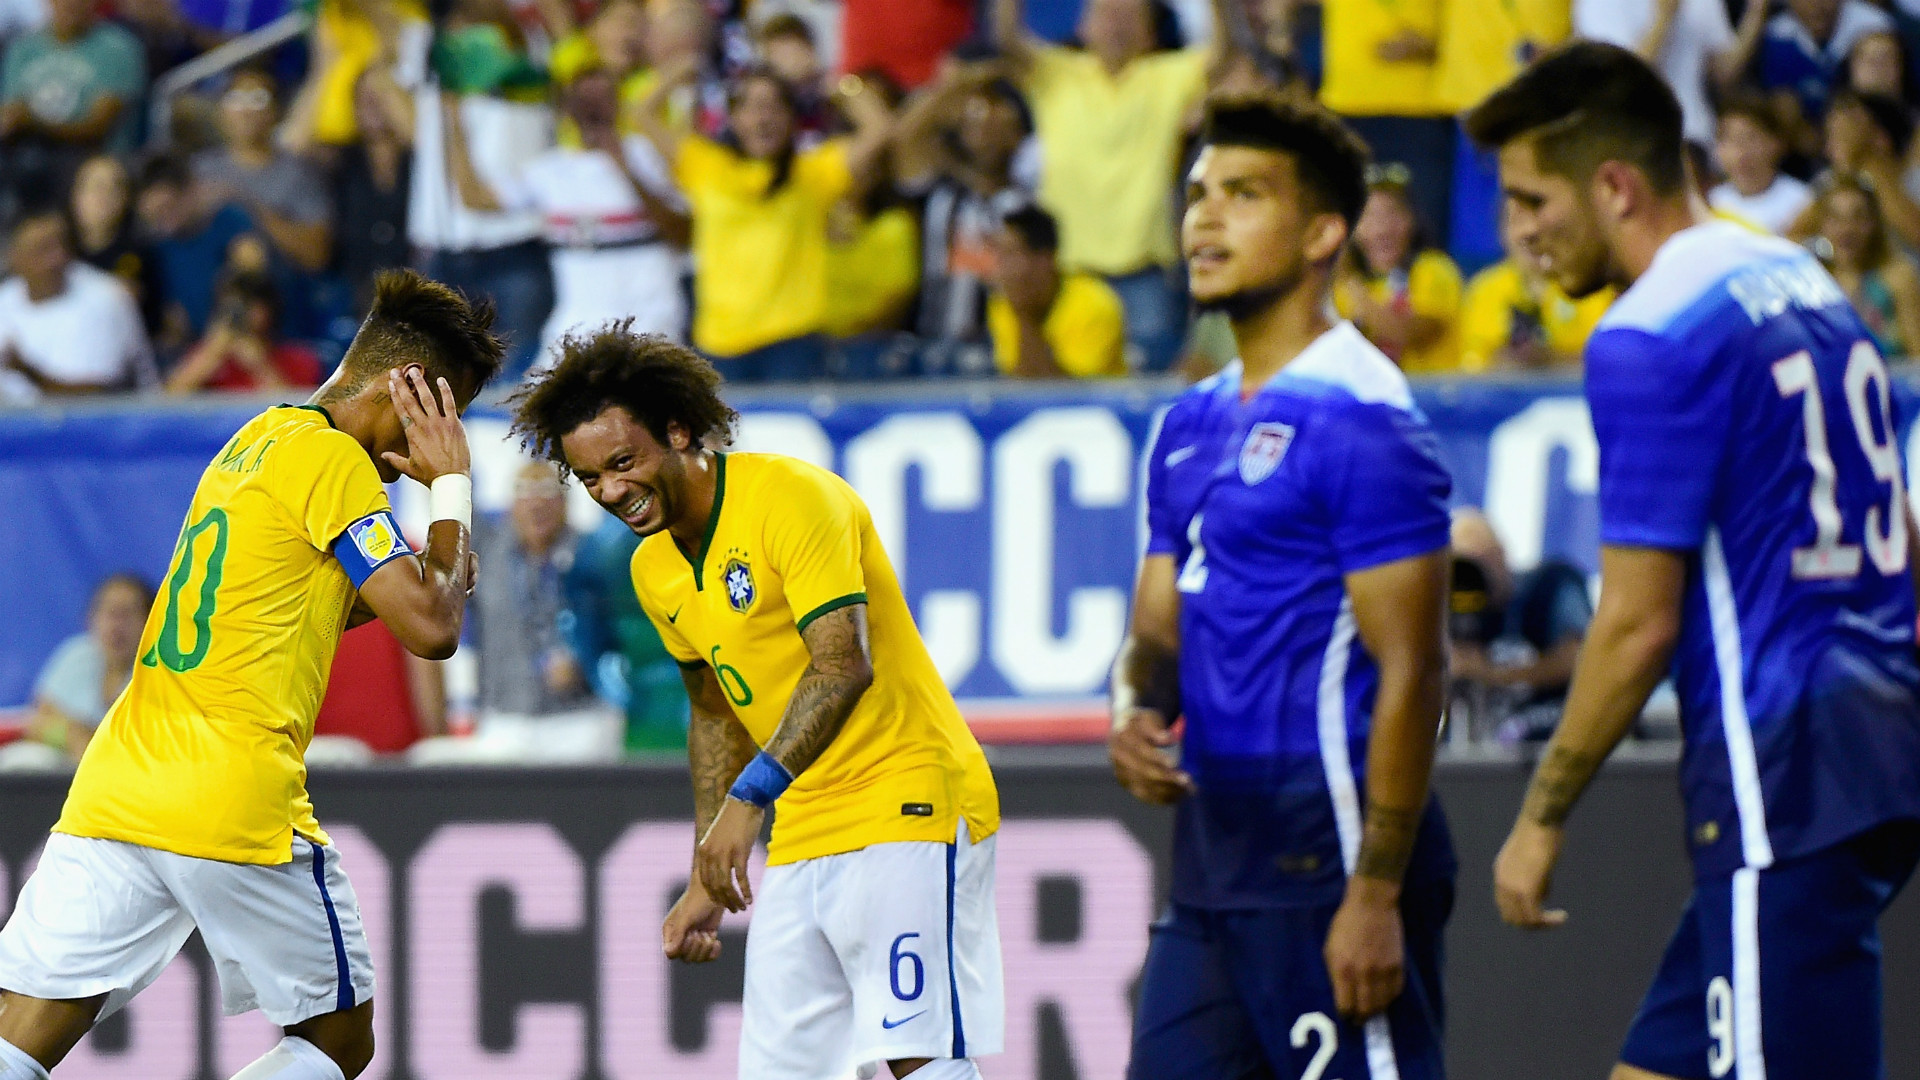 DeAndre Yedlin's comment to referee on a Neymar dive was ideal